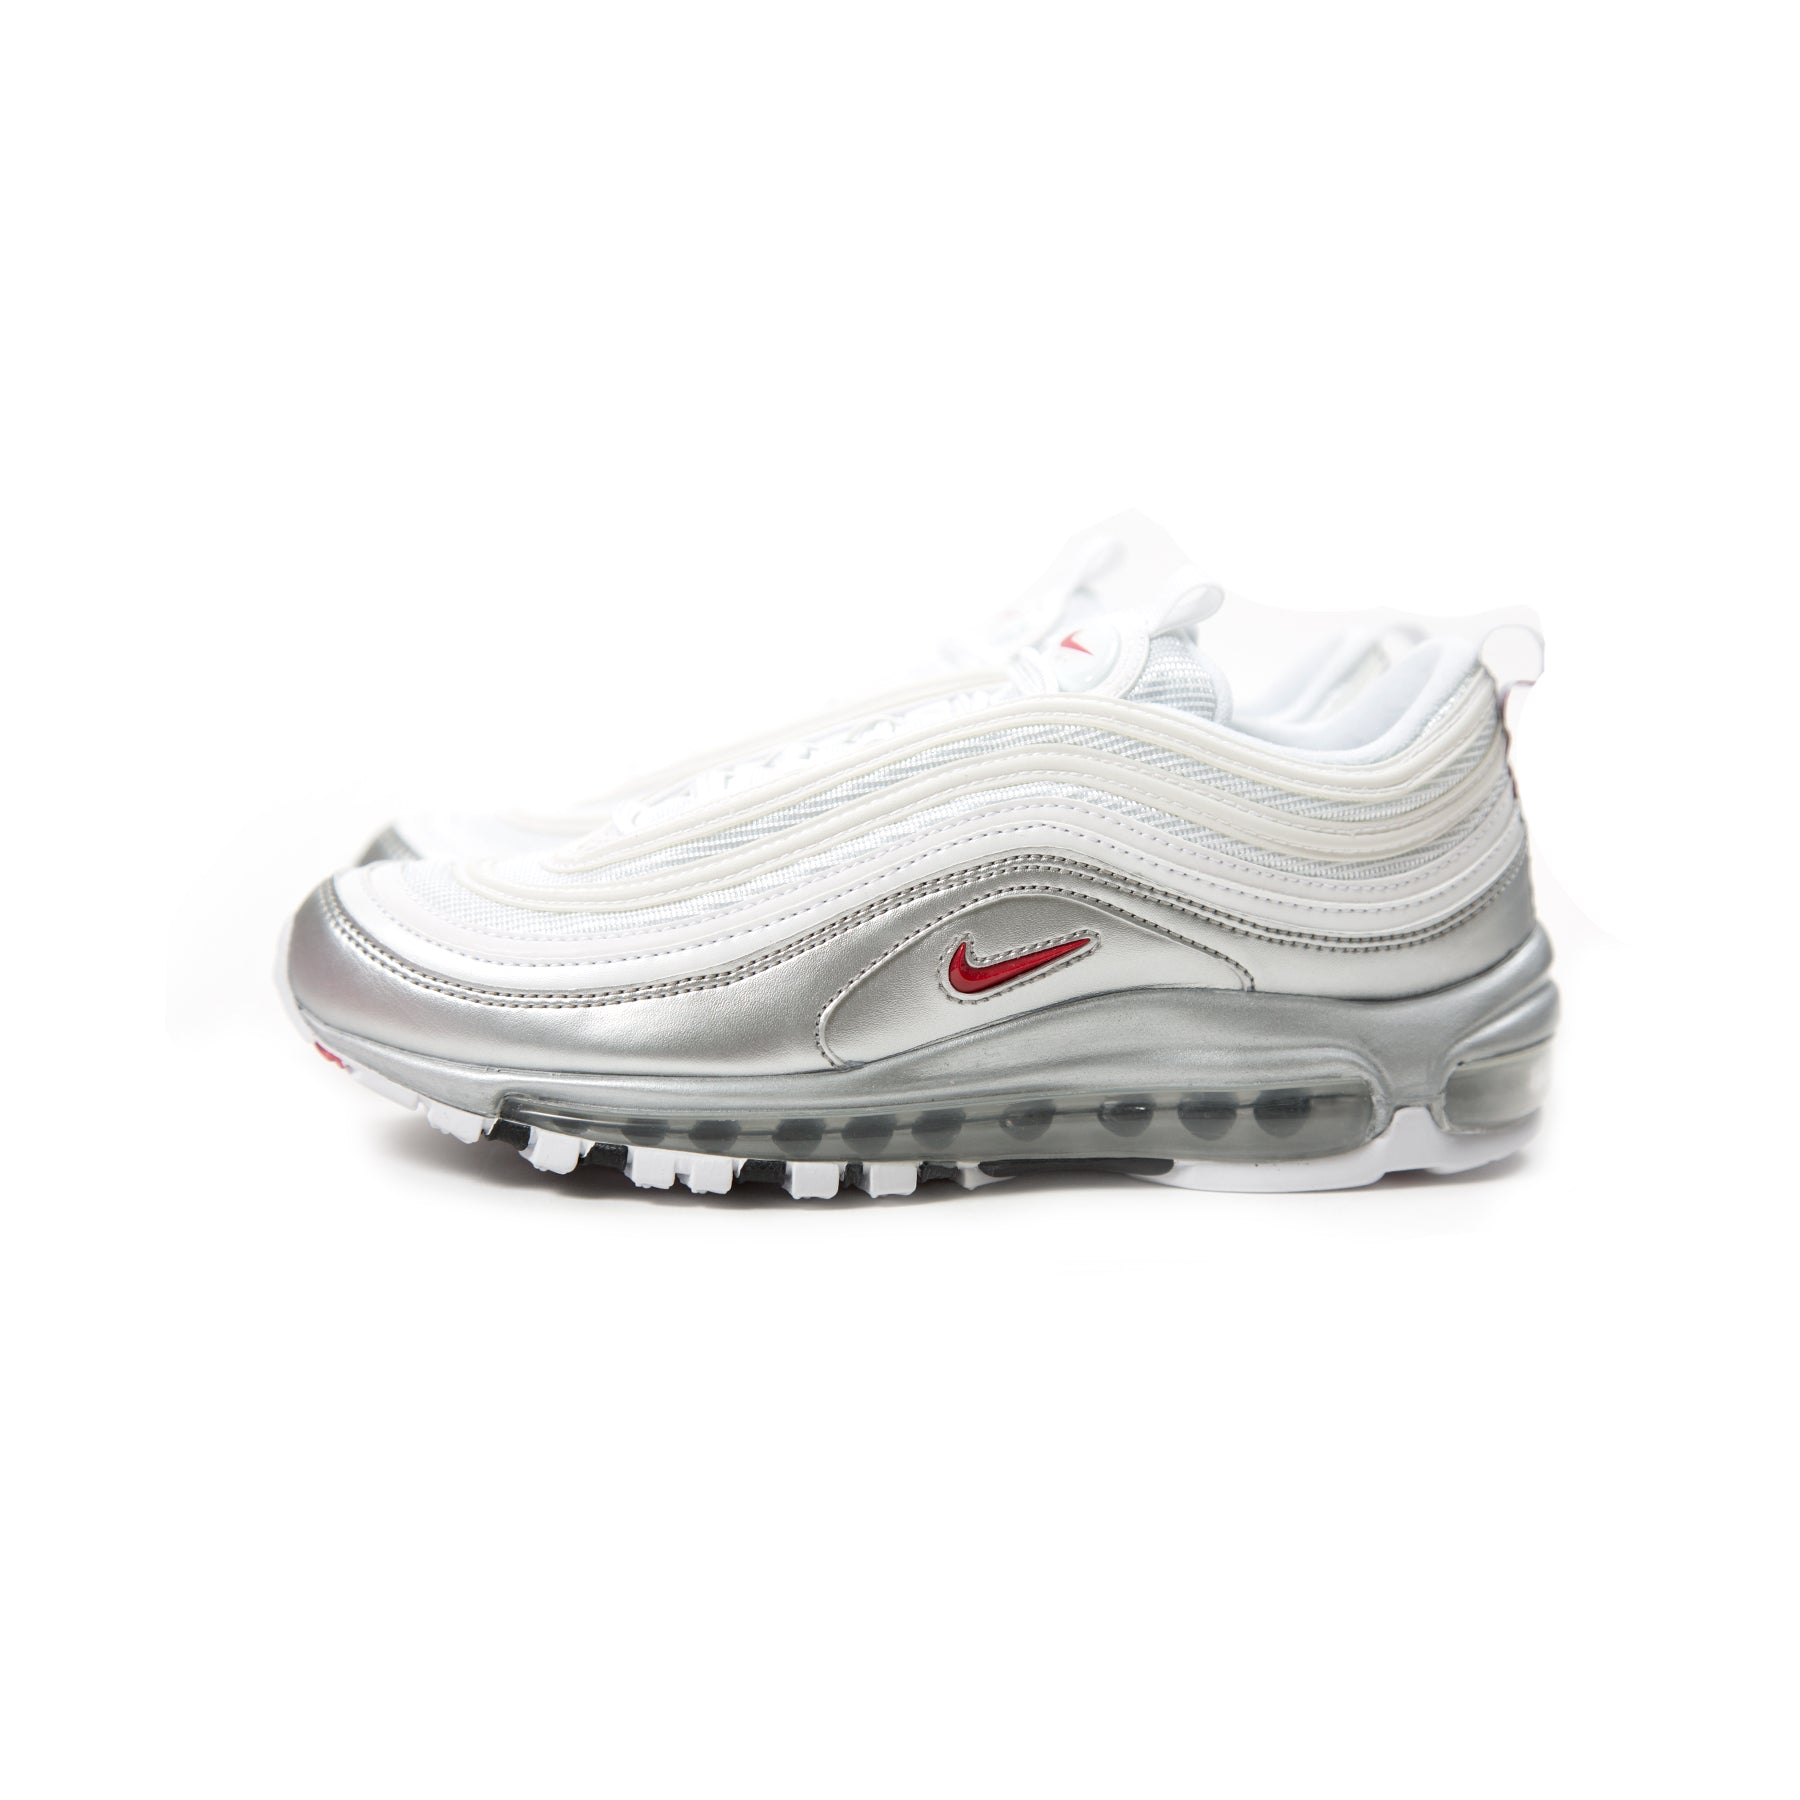 new arrival 39f9b 308f8 ConceptsIntl   Nike Air Max 97 QS (White Varsity Red Metallic Silver Black)